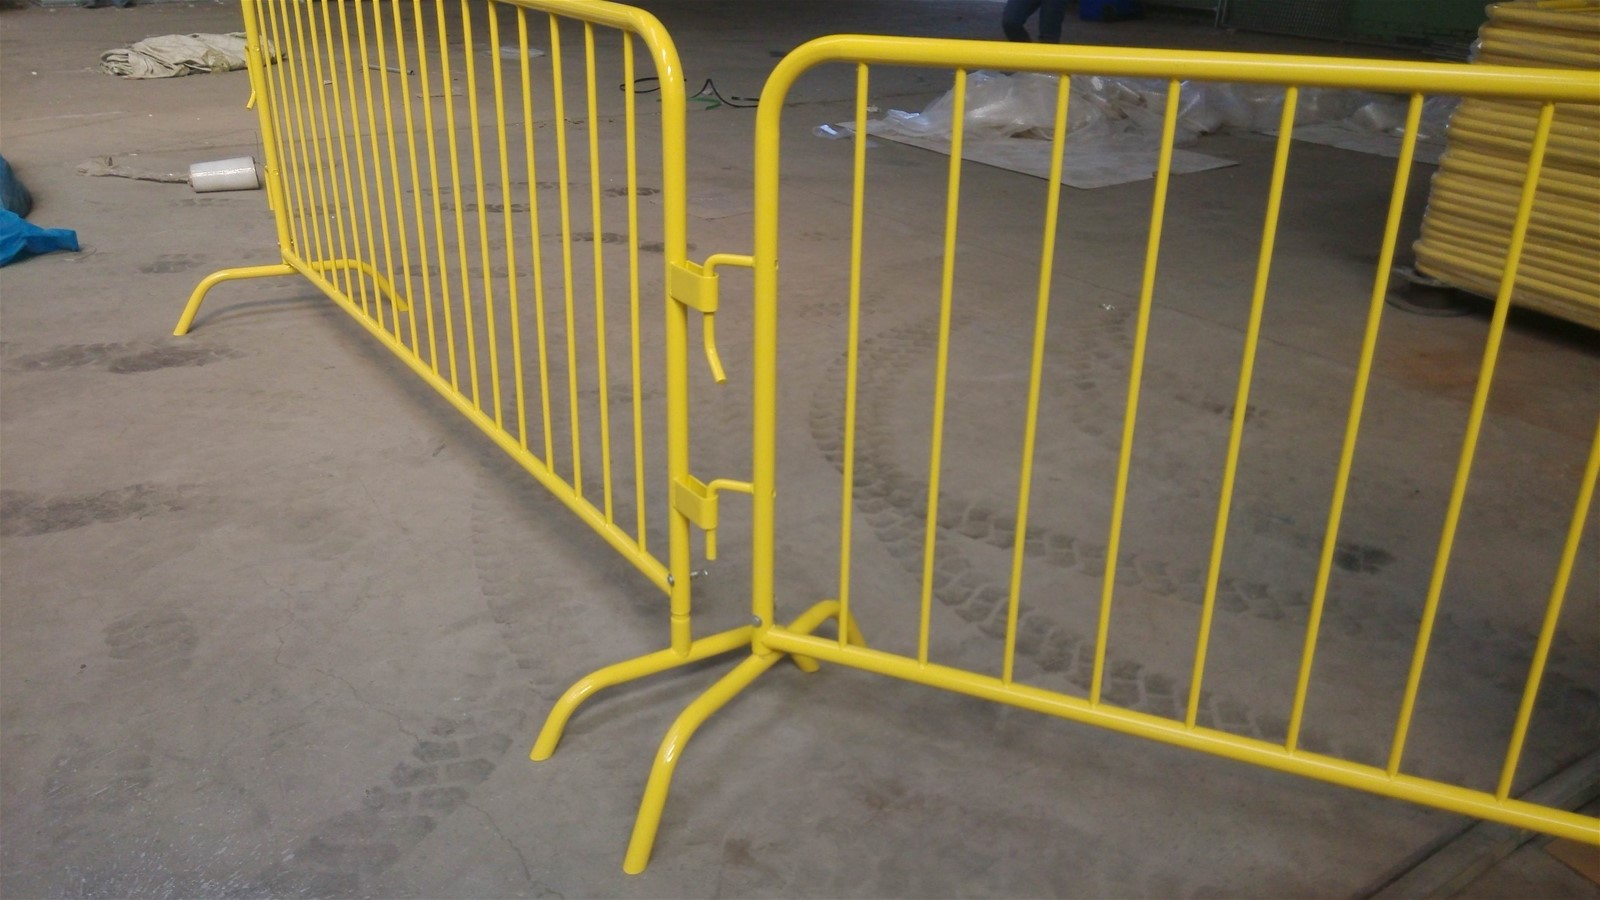 Stackable Event Barricade For Crowd Control Construction